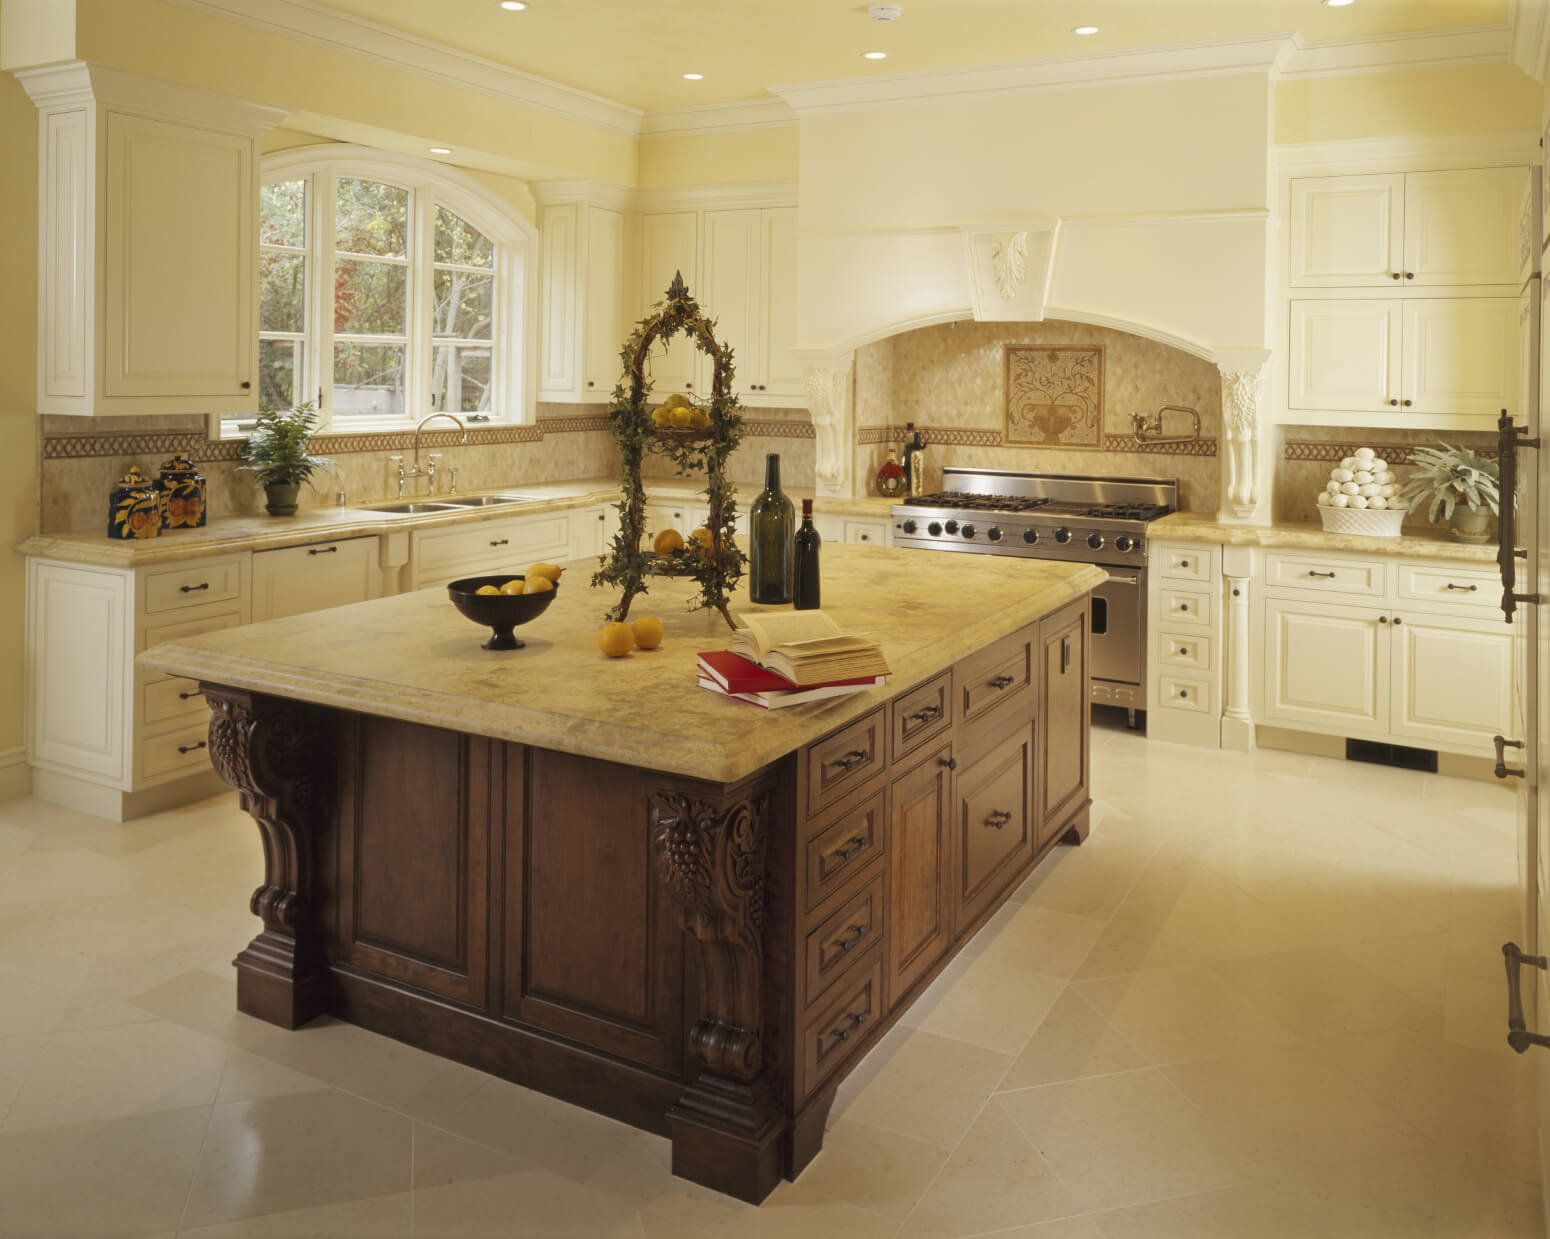 48 luxury dream kitchen designs worth every penny photos for Kitchen designs with islands